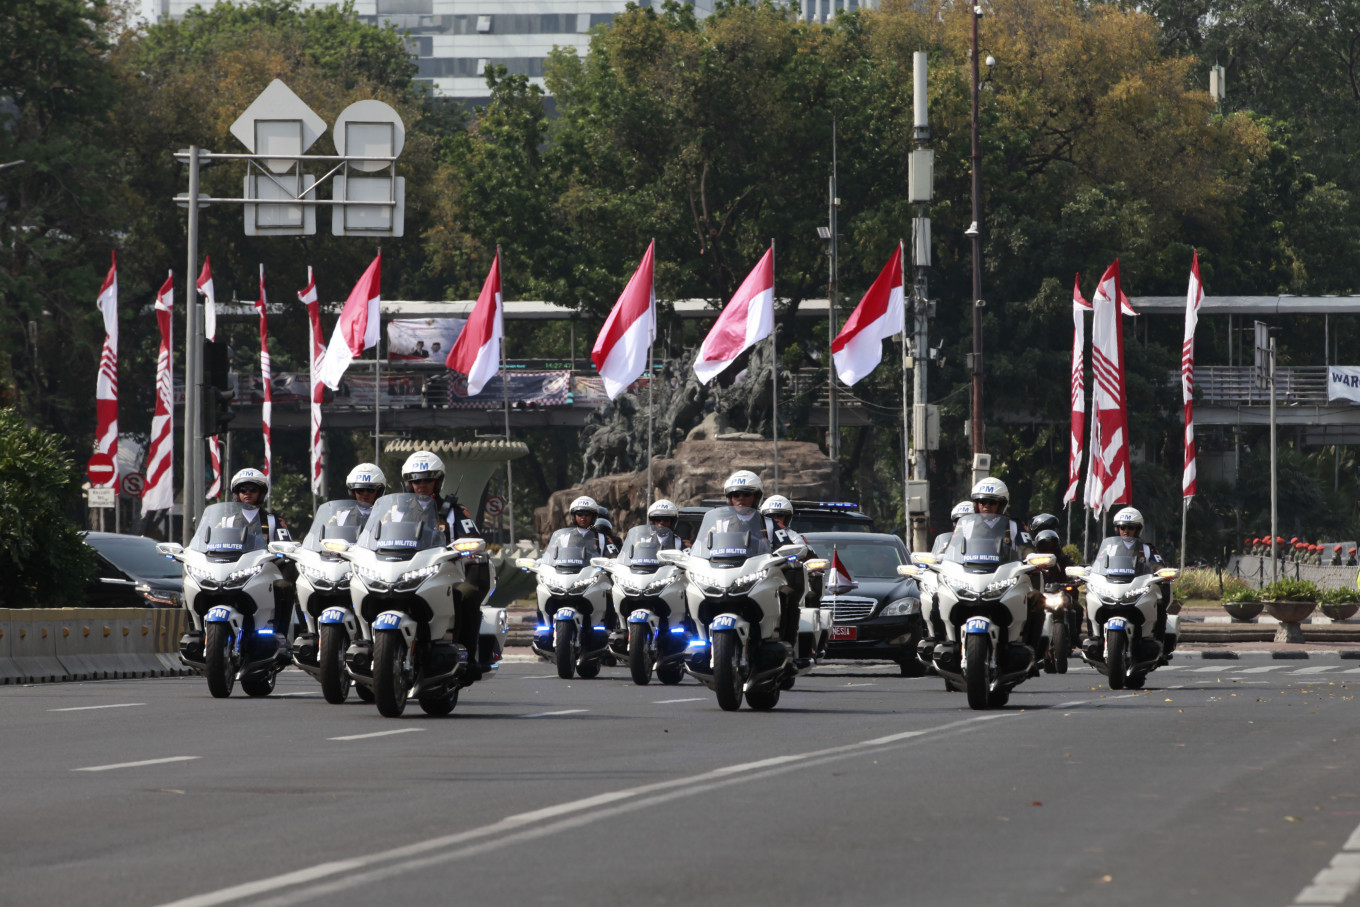 A convoy of vehicles carrying the President passes the front of Bank Indonesia Fountain, Jakarta, on its way to the inauguration ceremony. JP/Narabeto Korohama